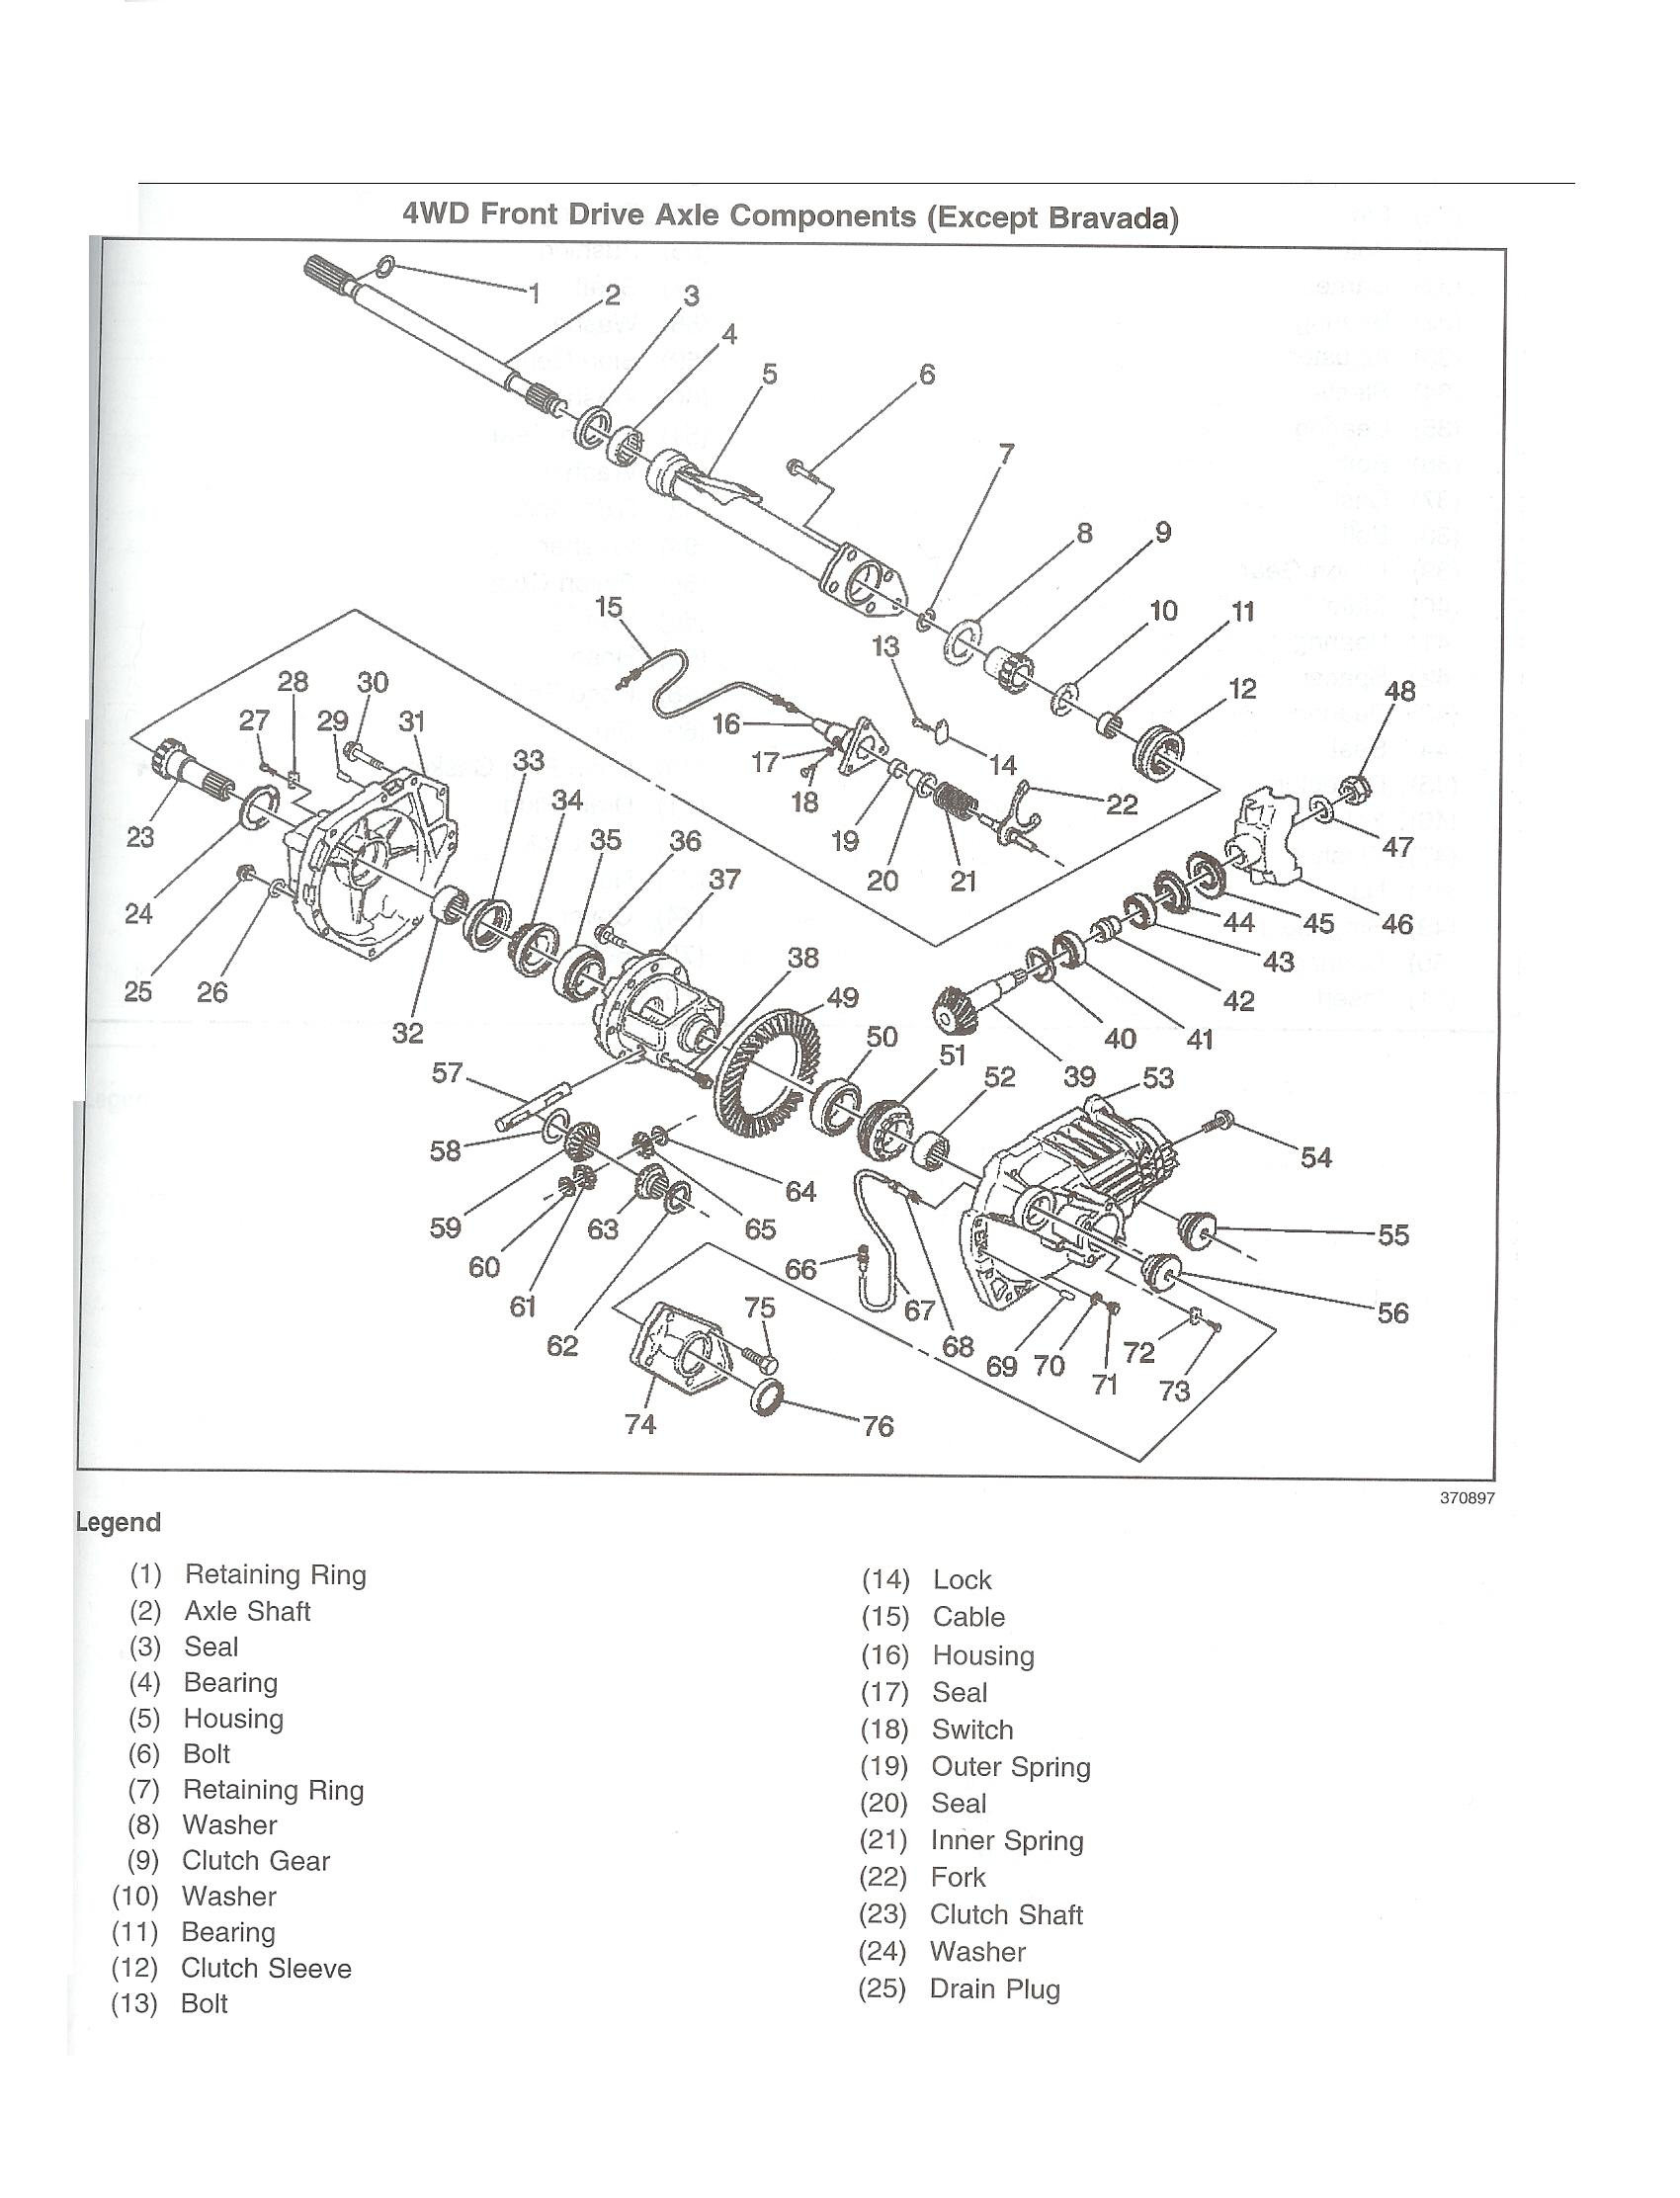 hight resolution of 2003 chevy blazer front axle diagram page 8 wiring diagram for you 2004 chevy s10 axle diagram